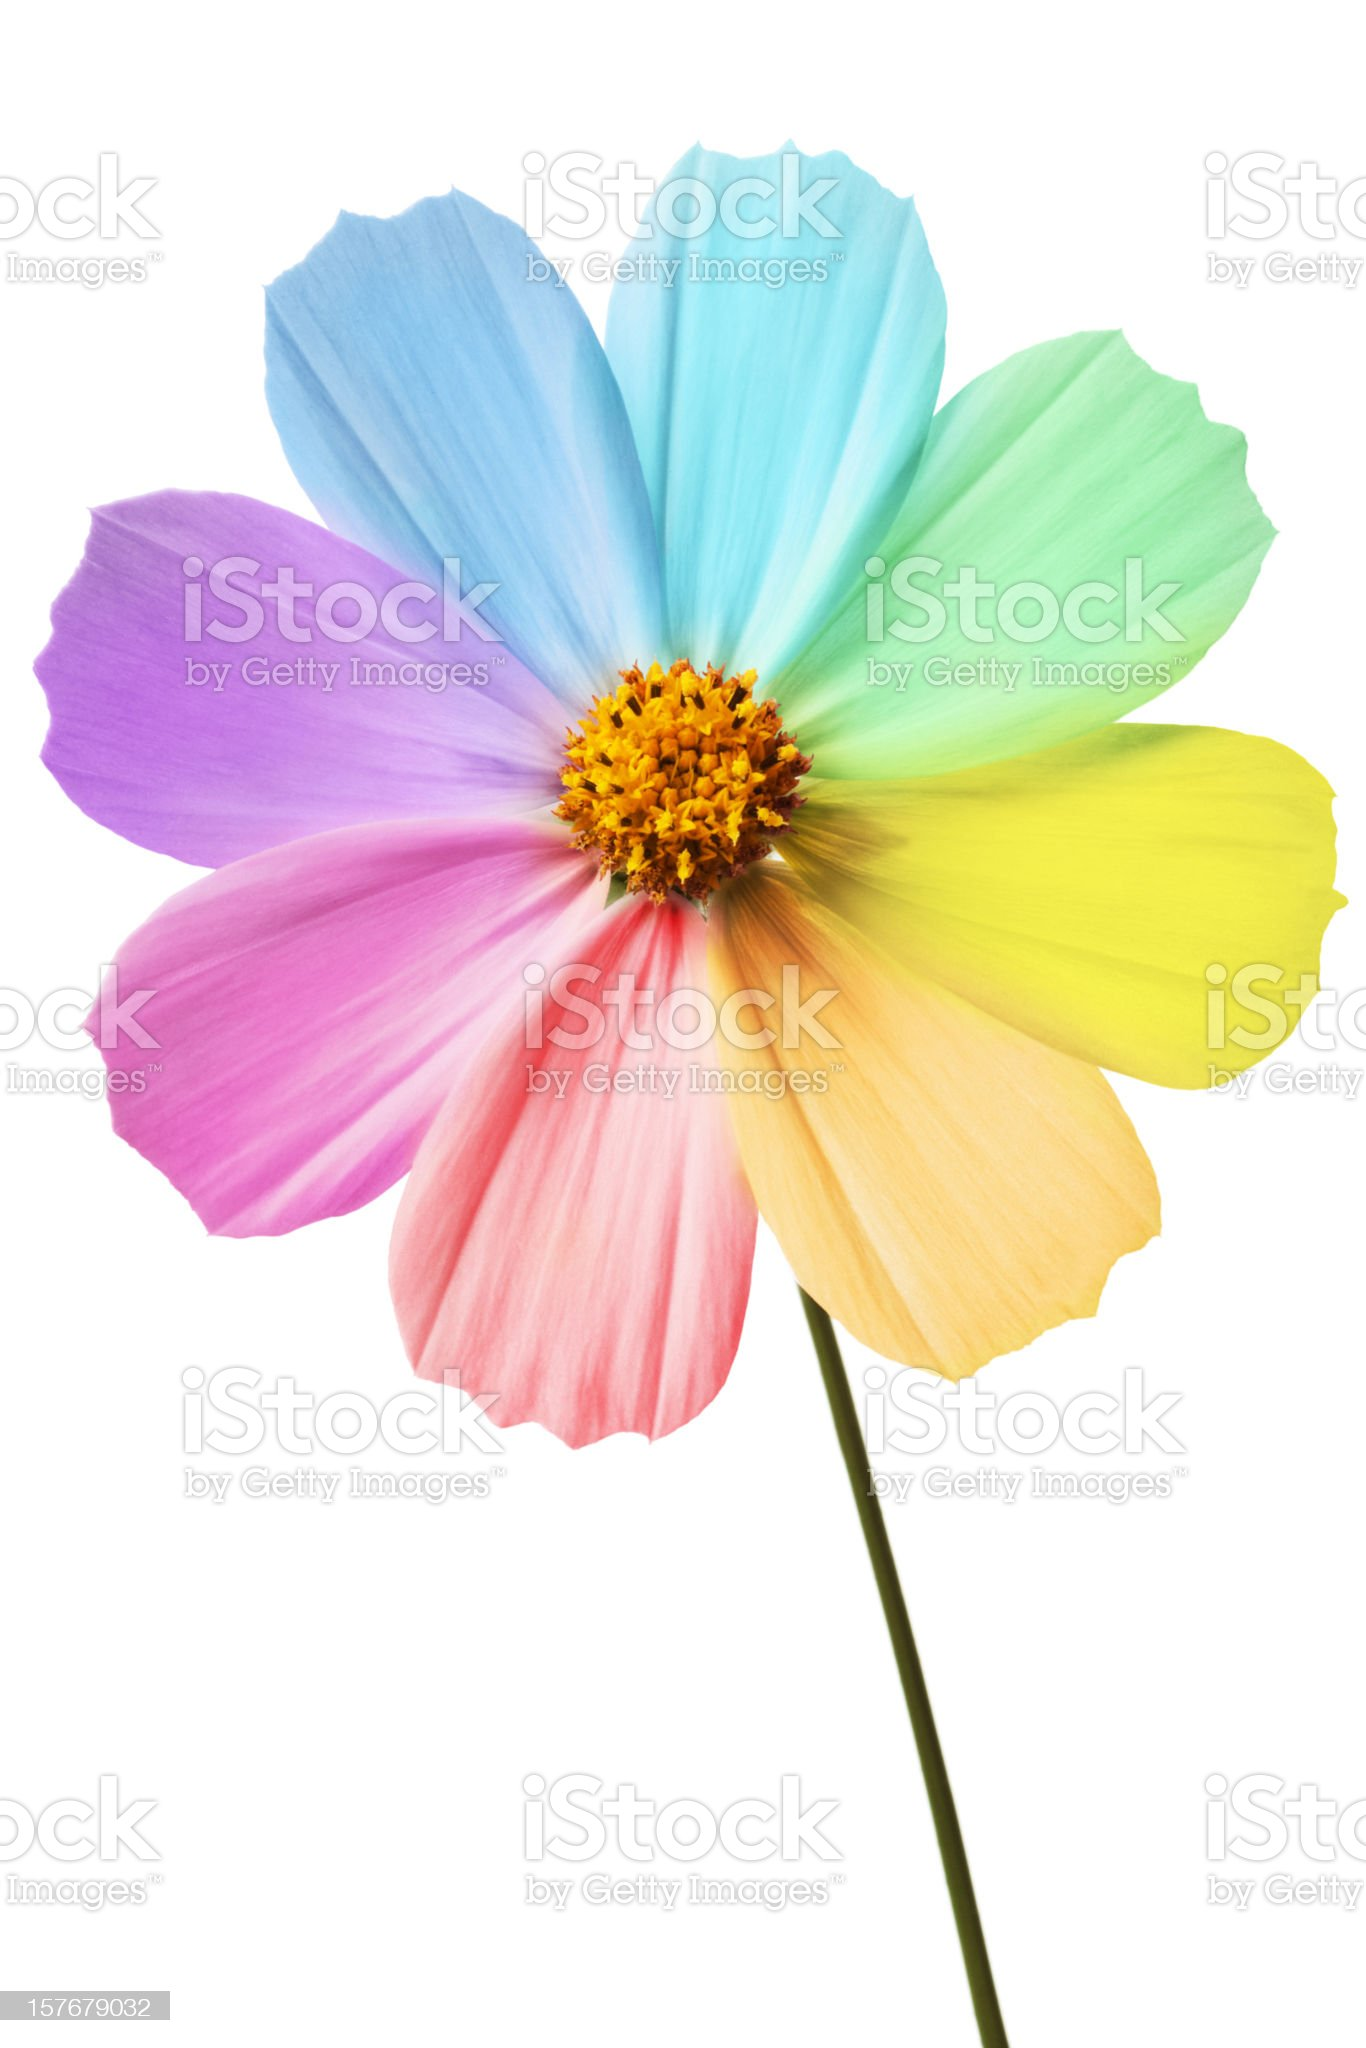 Daisy with rainbow petals on a white background  royalty-free stock photo